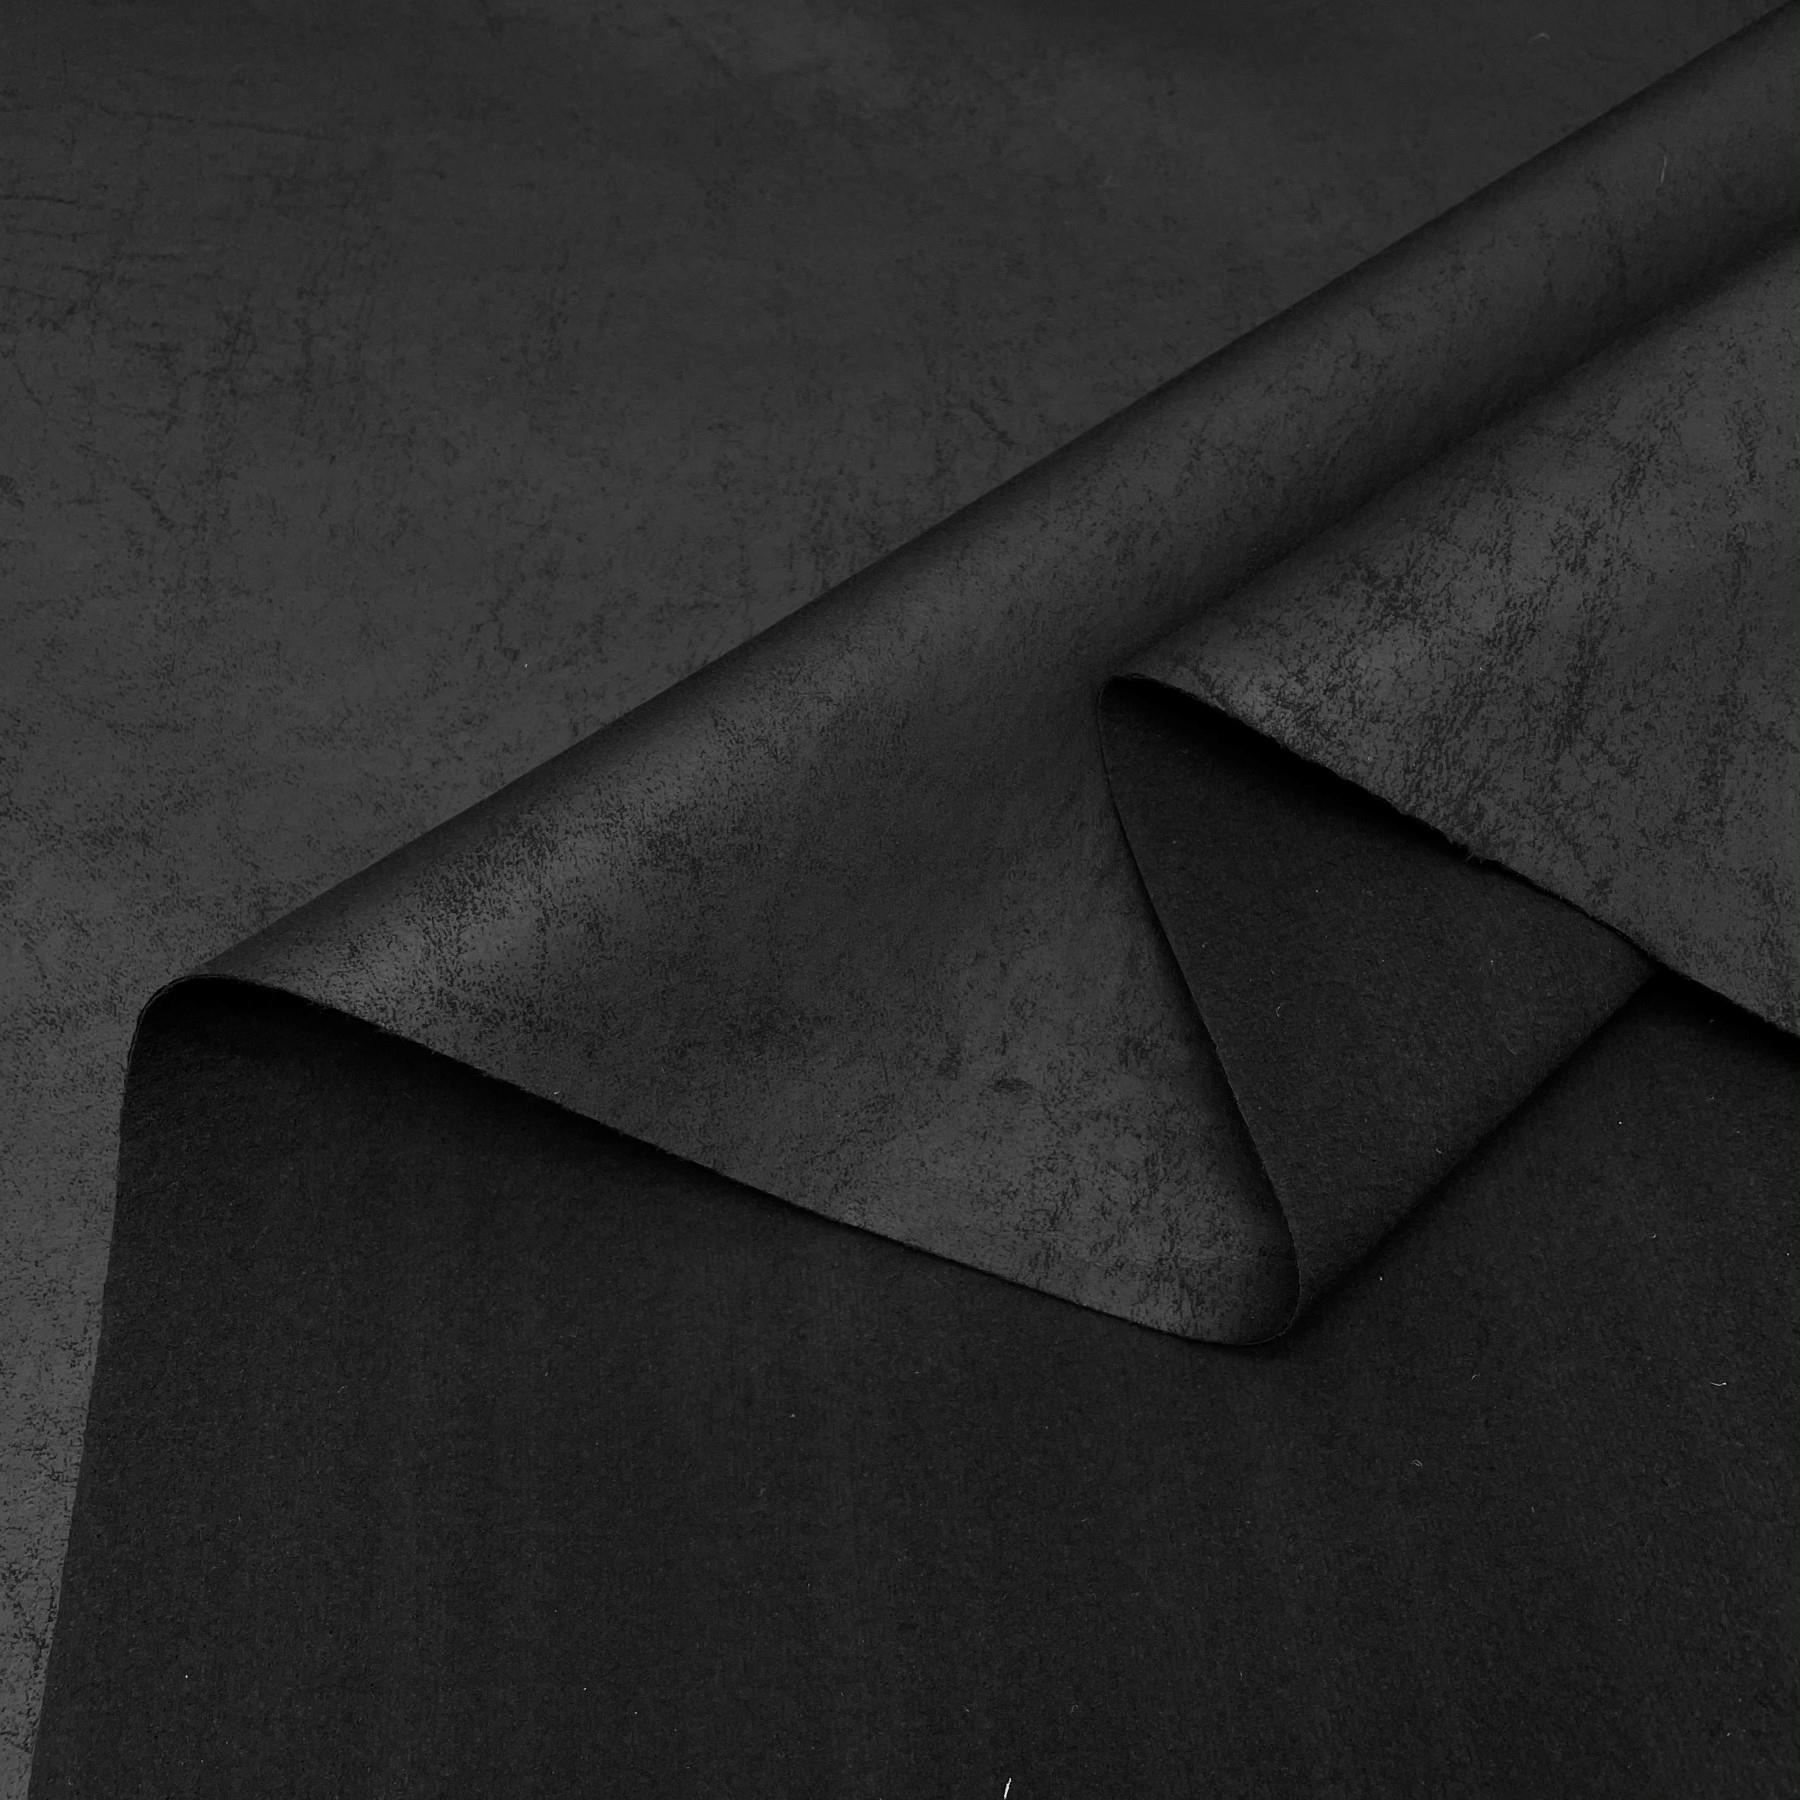 thumbnail 12 - AGED BROWN DISTRESSED ANTIQUED SUEDE FAUX LEATHER LEATHERETTE UPHOLSTERY FABRIC